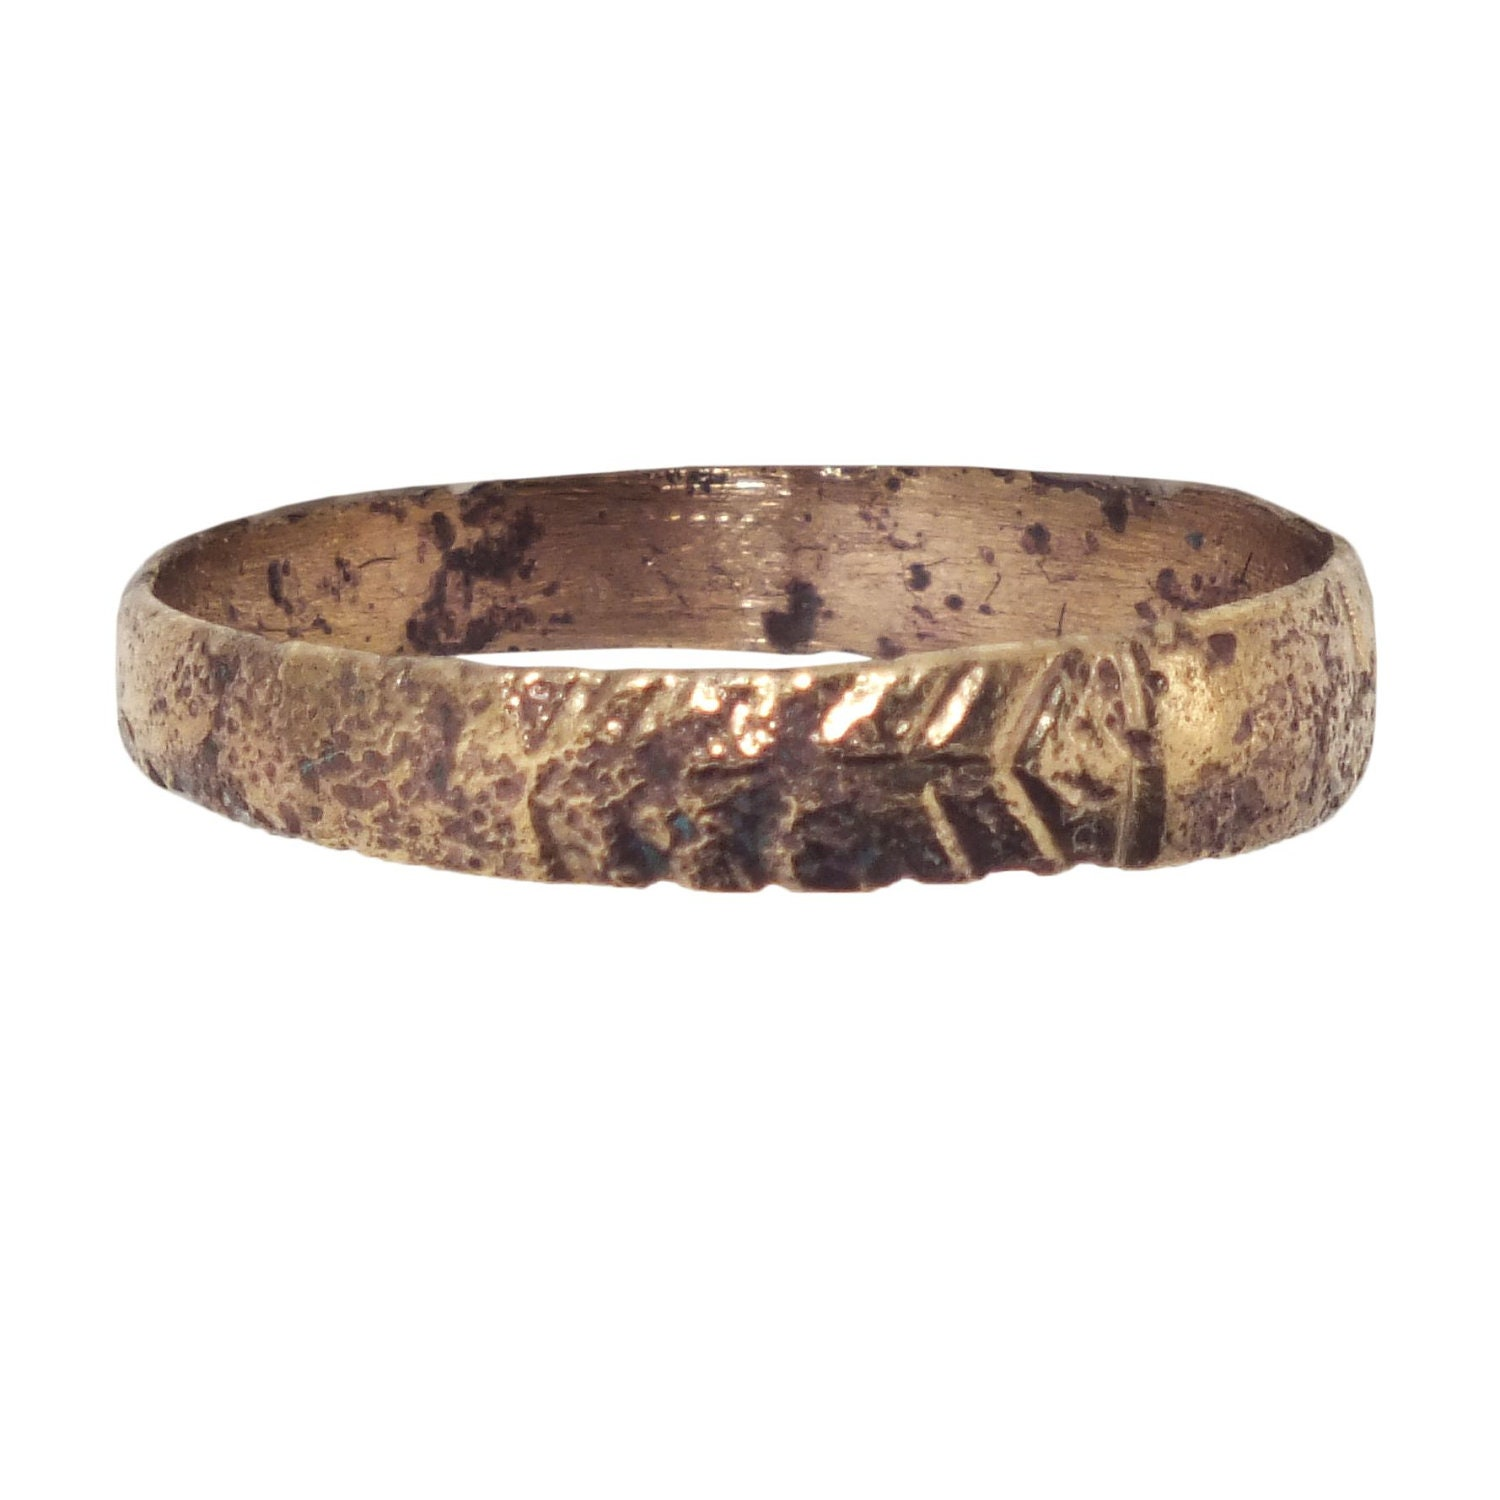 Viking Bands: Picardi Ancient Viking Wedding Ring Jewelry. By